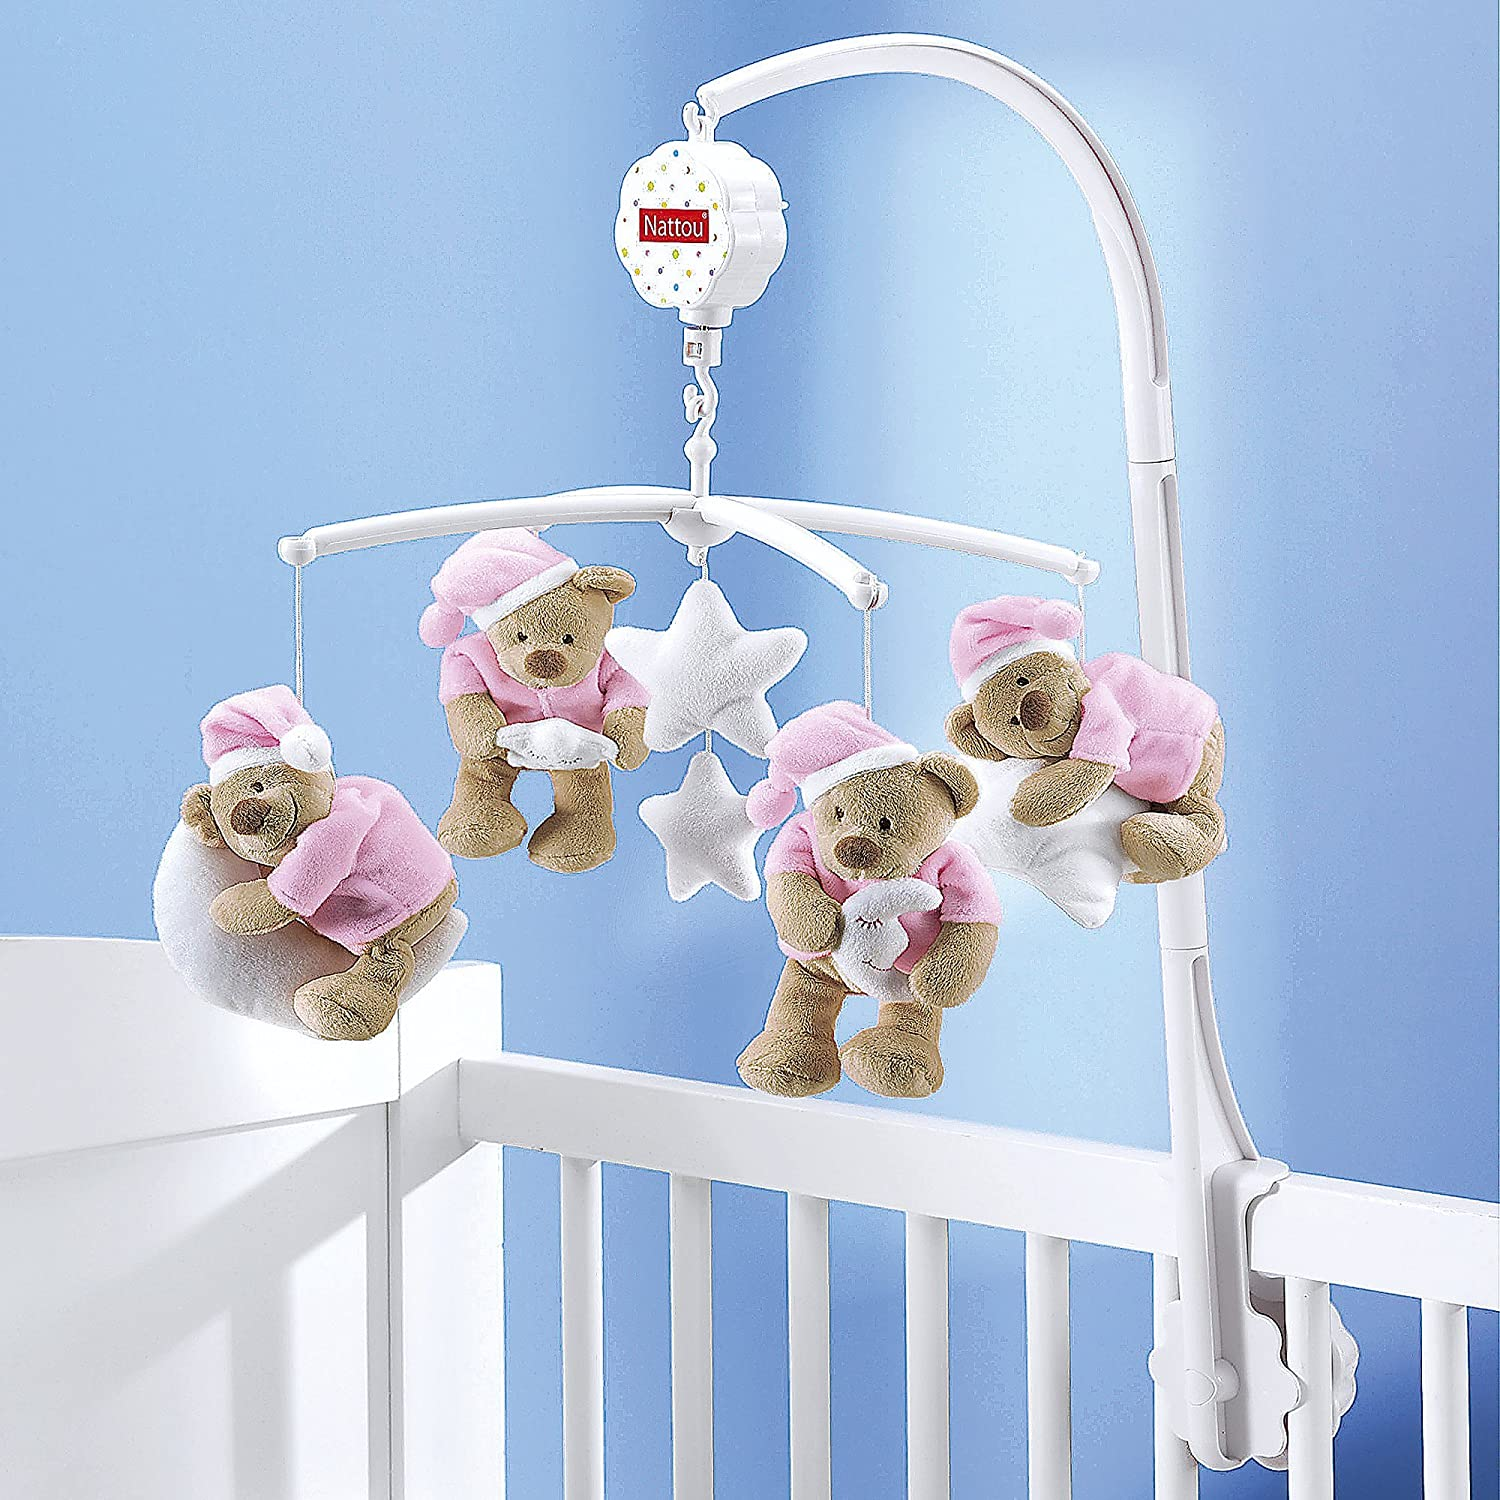 Bebes mobile nattou mobile musical dream bear de lit b b - Mobile musical bebe fille ...